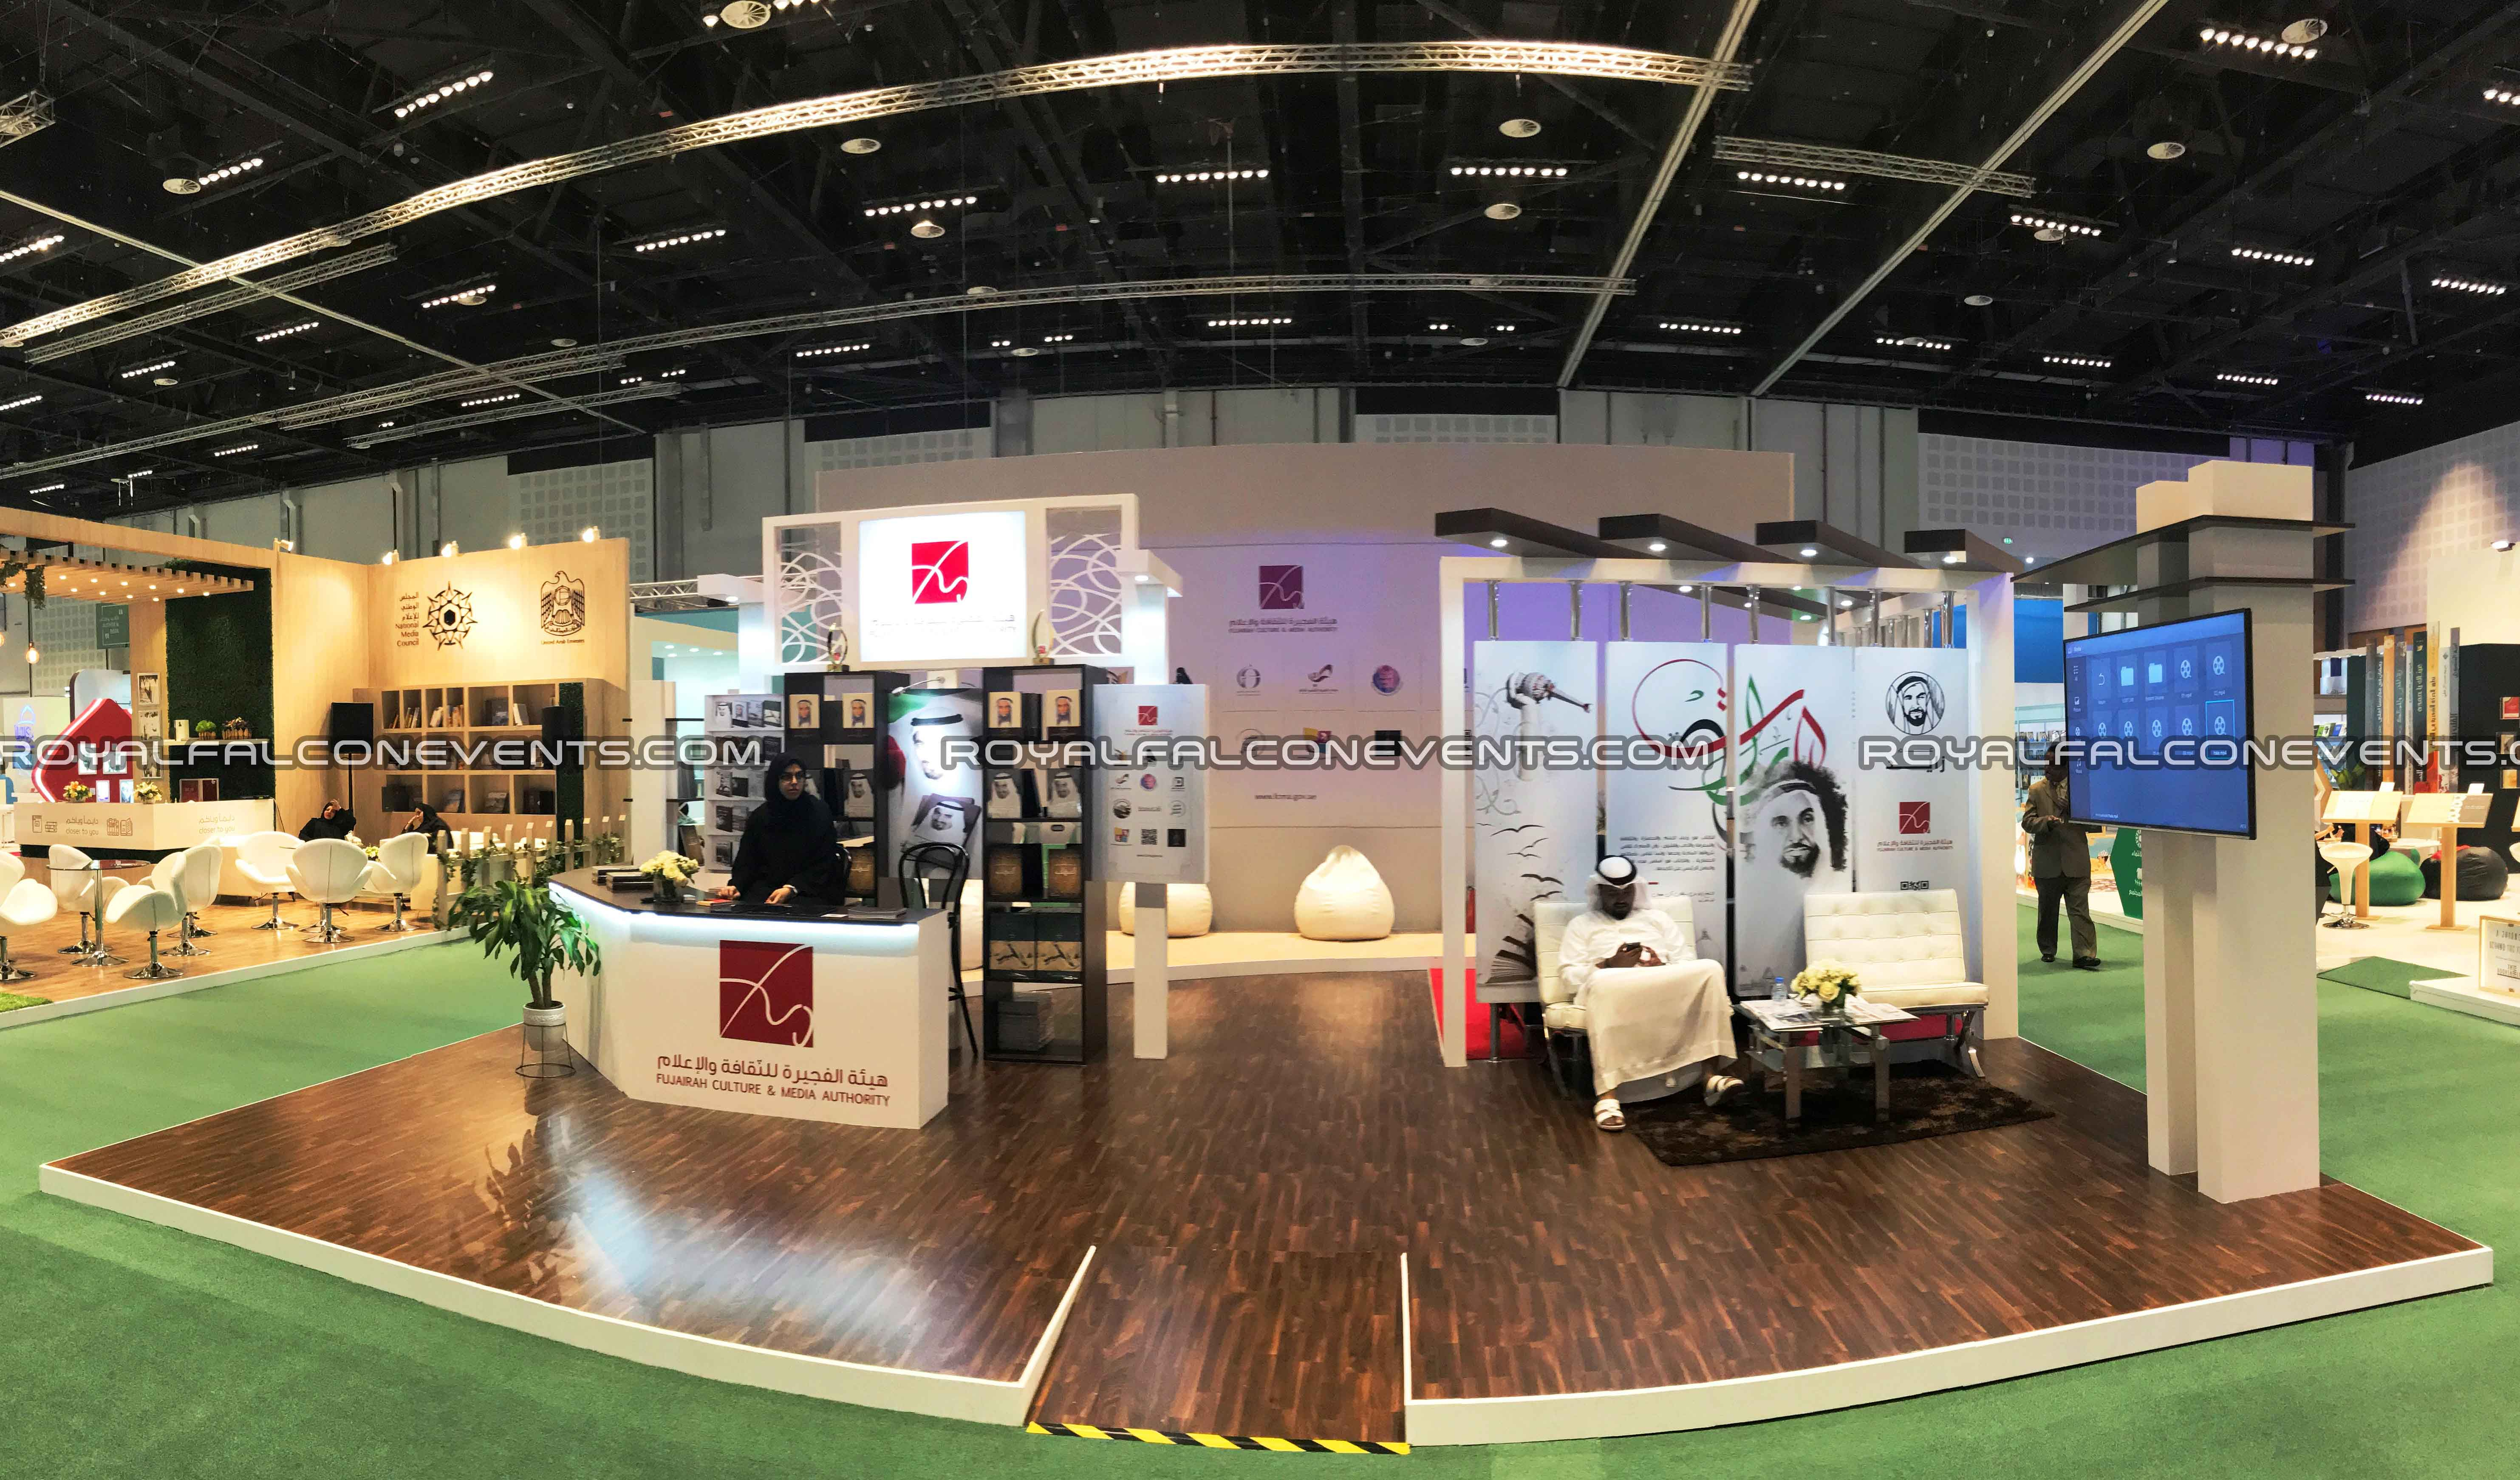 Exhibition Stand Builders In Uae : Exhibition stand builders in dubai royal falcon events